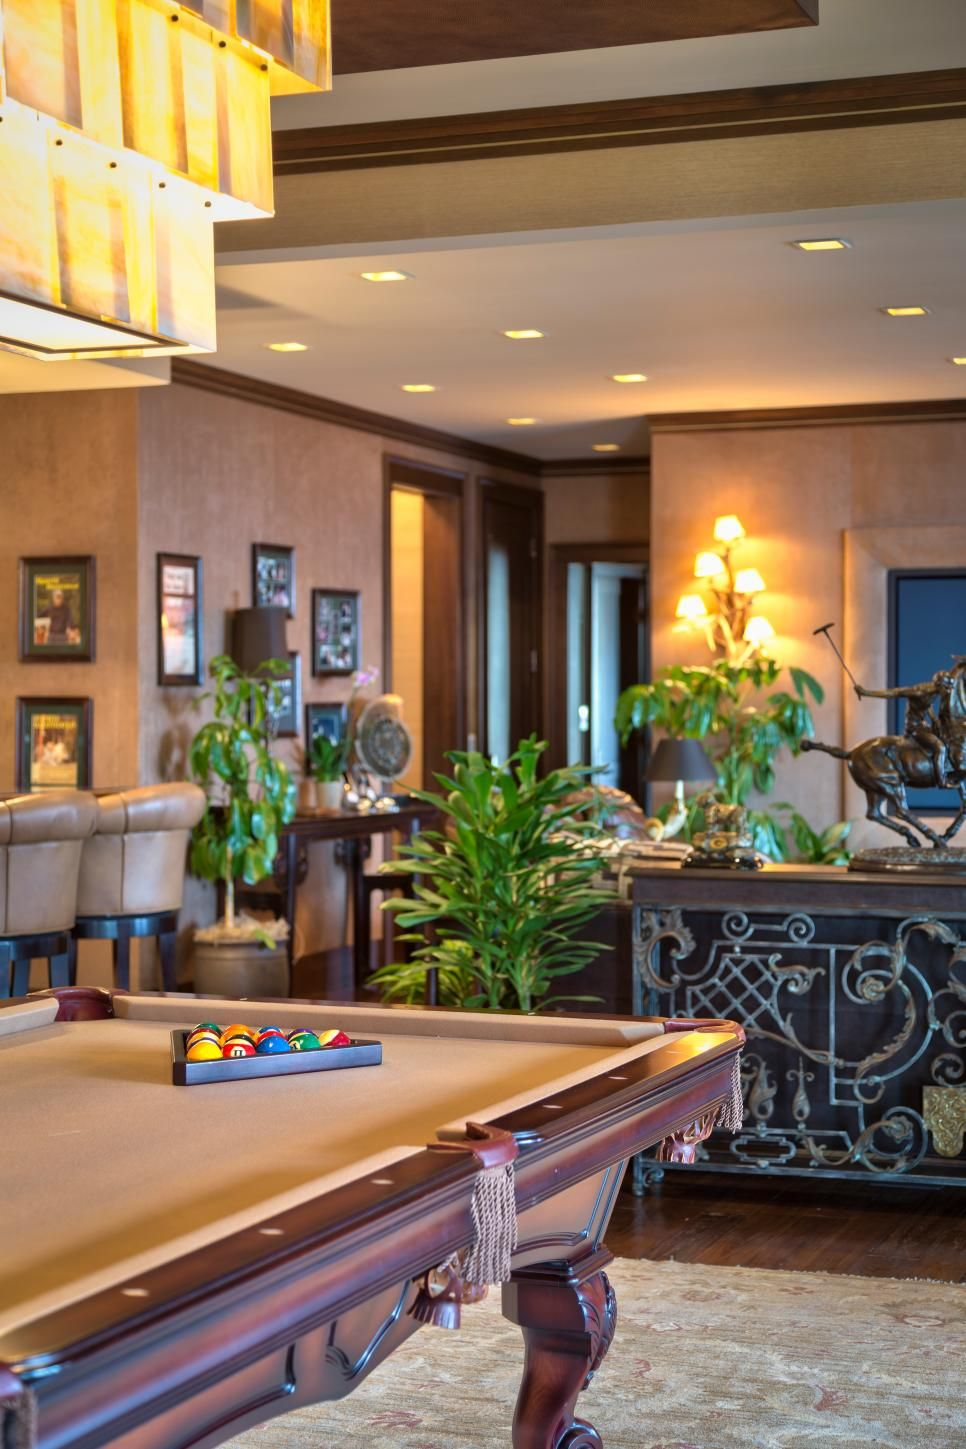 Game Room With Tropical Design And Pool Table Game Room Contemporary Games Tropical Design